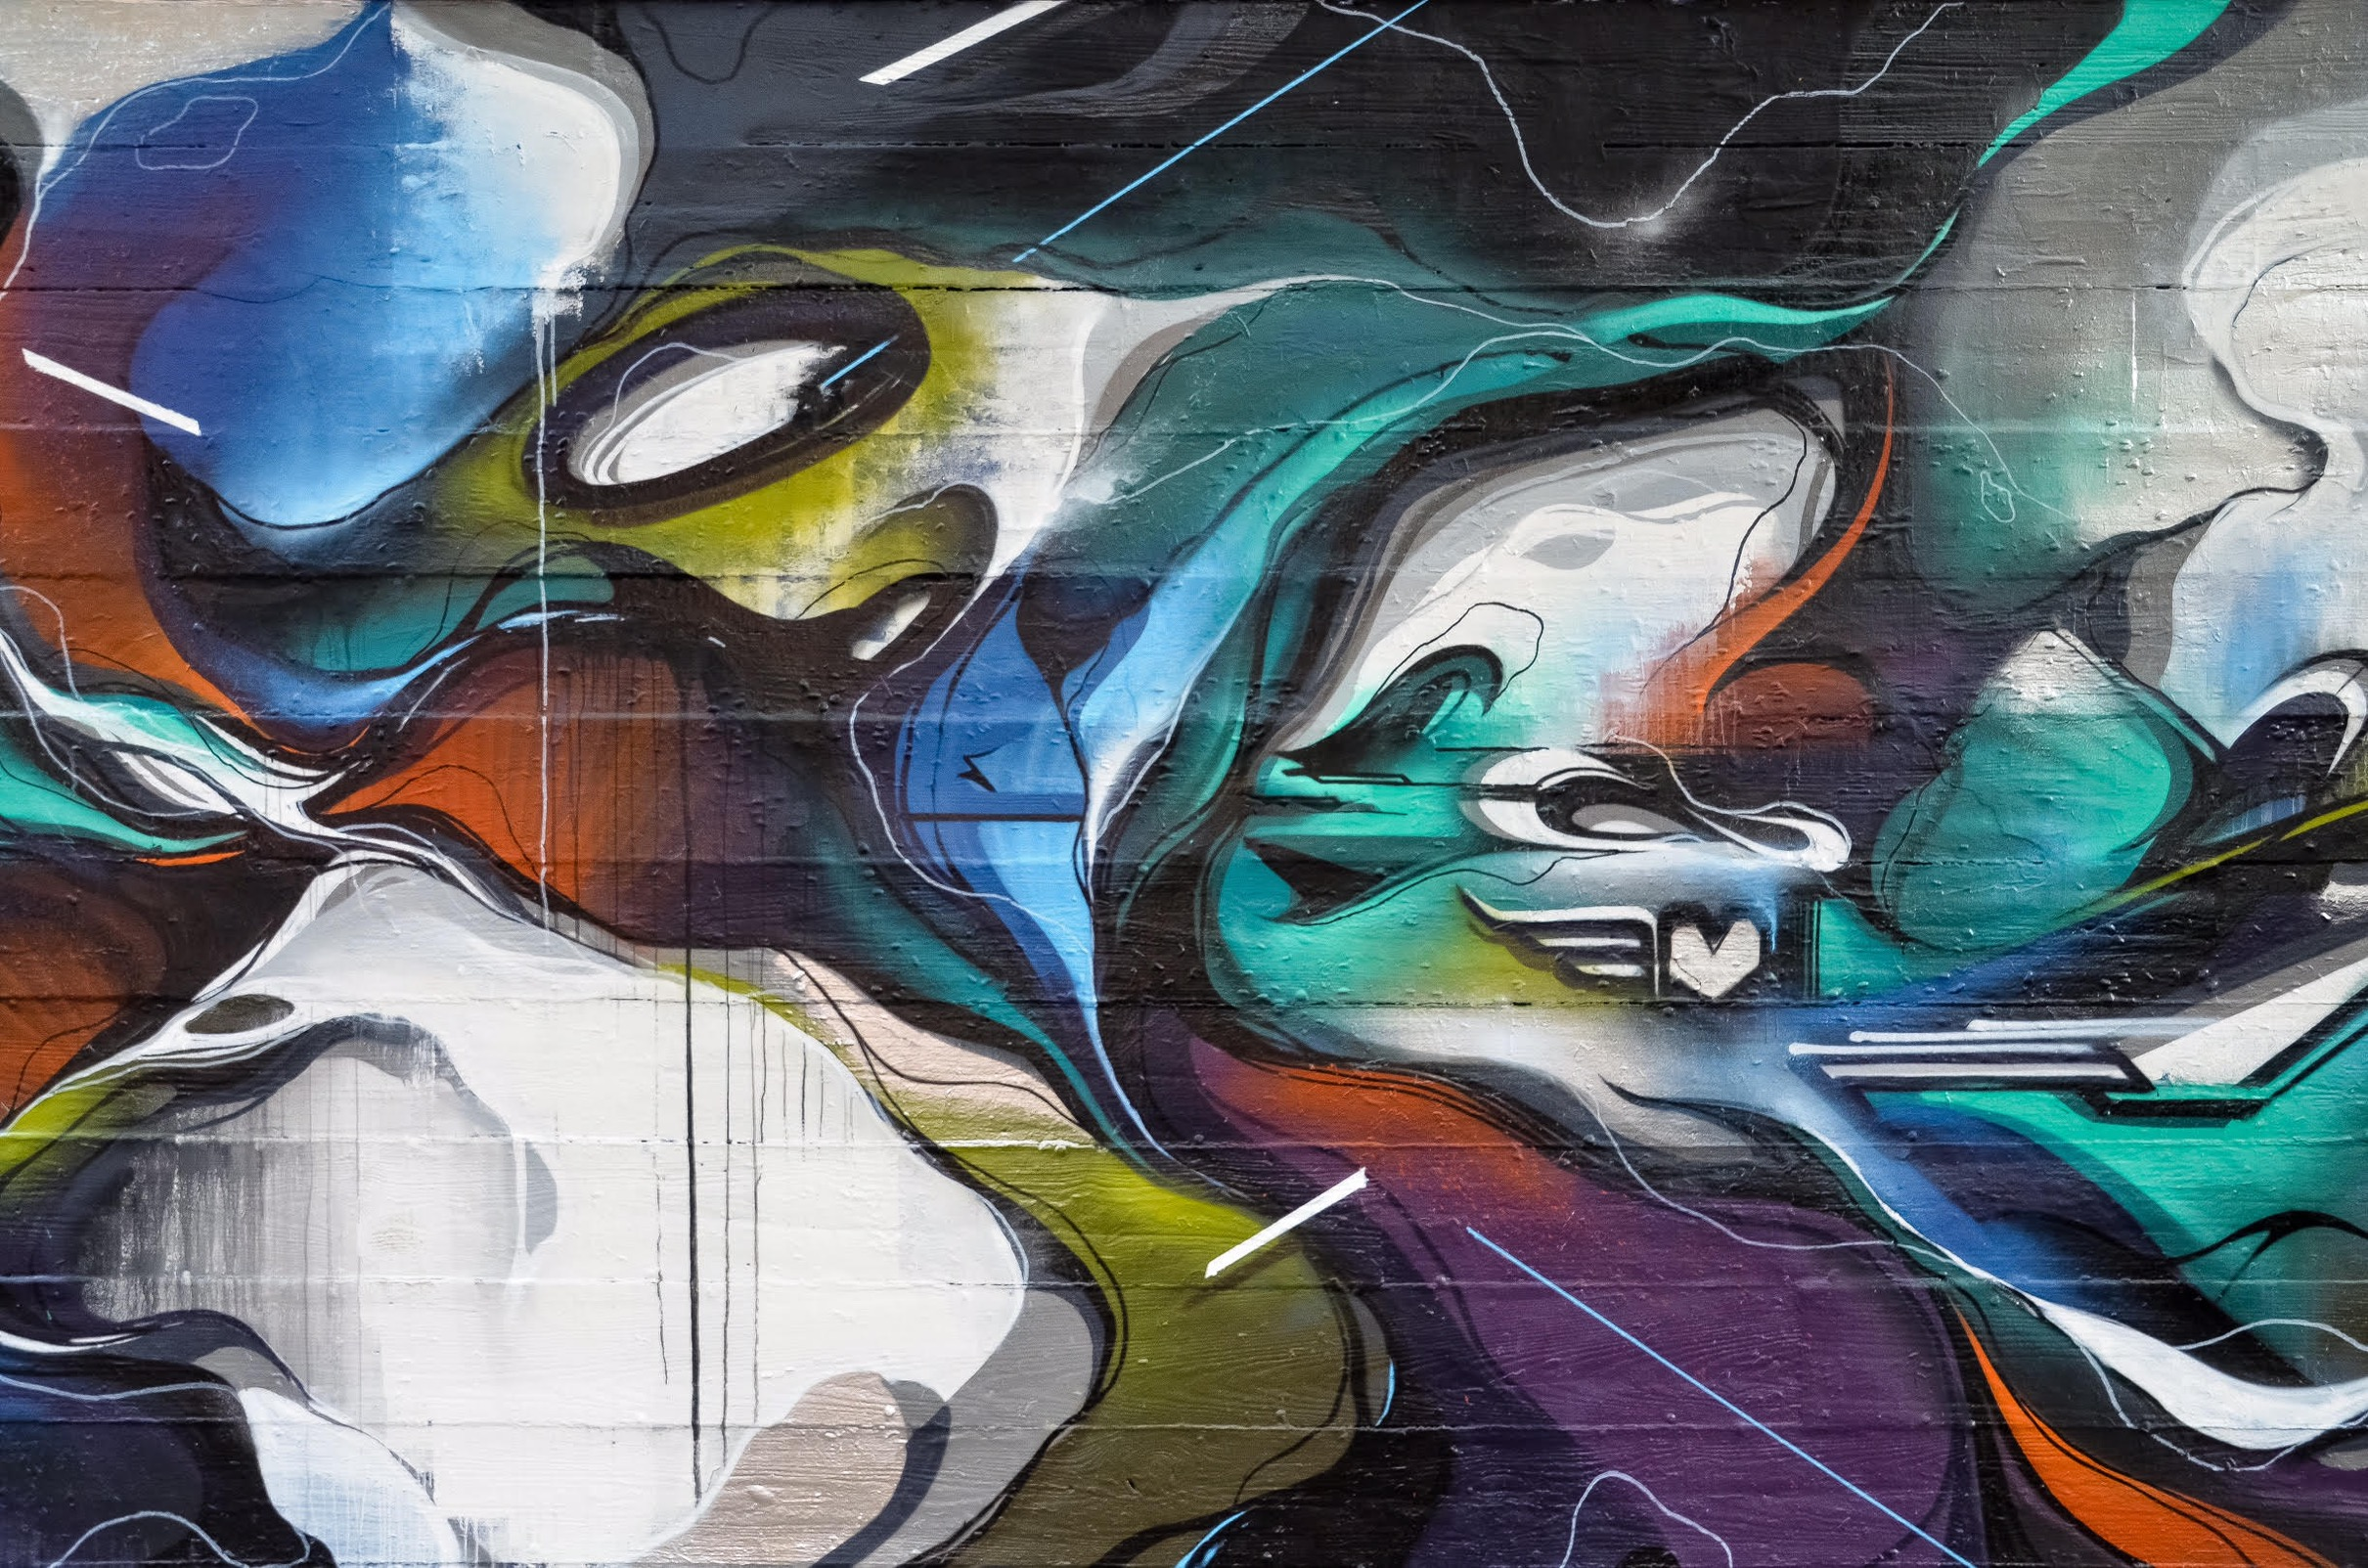 A work by Does - Chicago usa mural detail 1